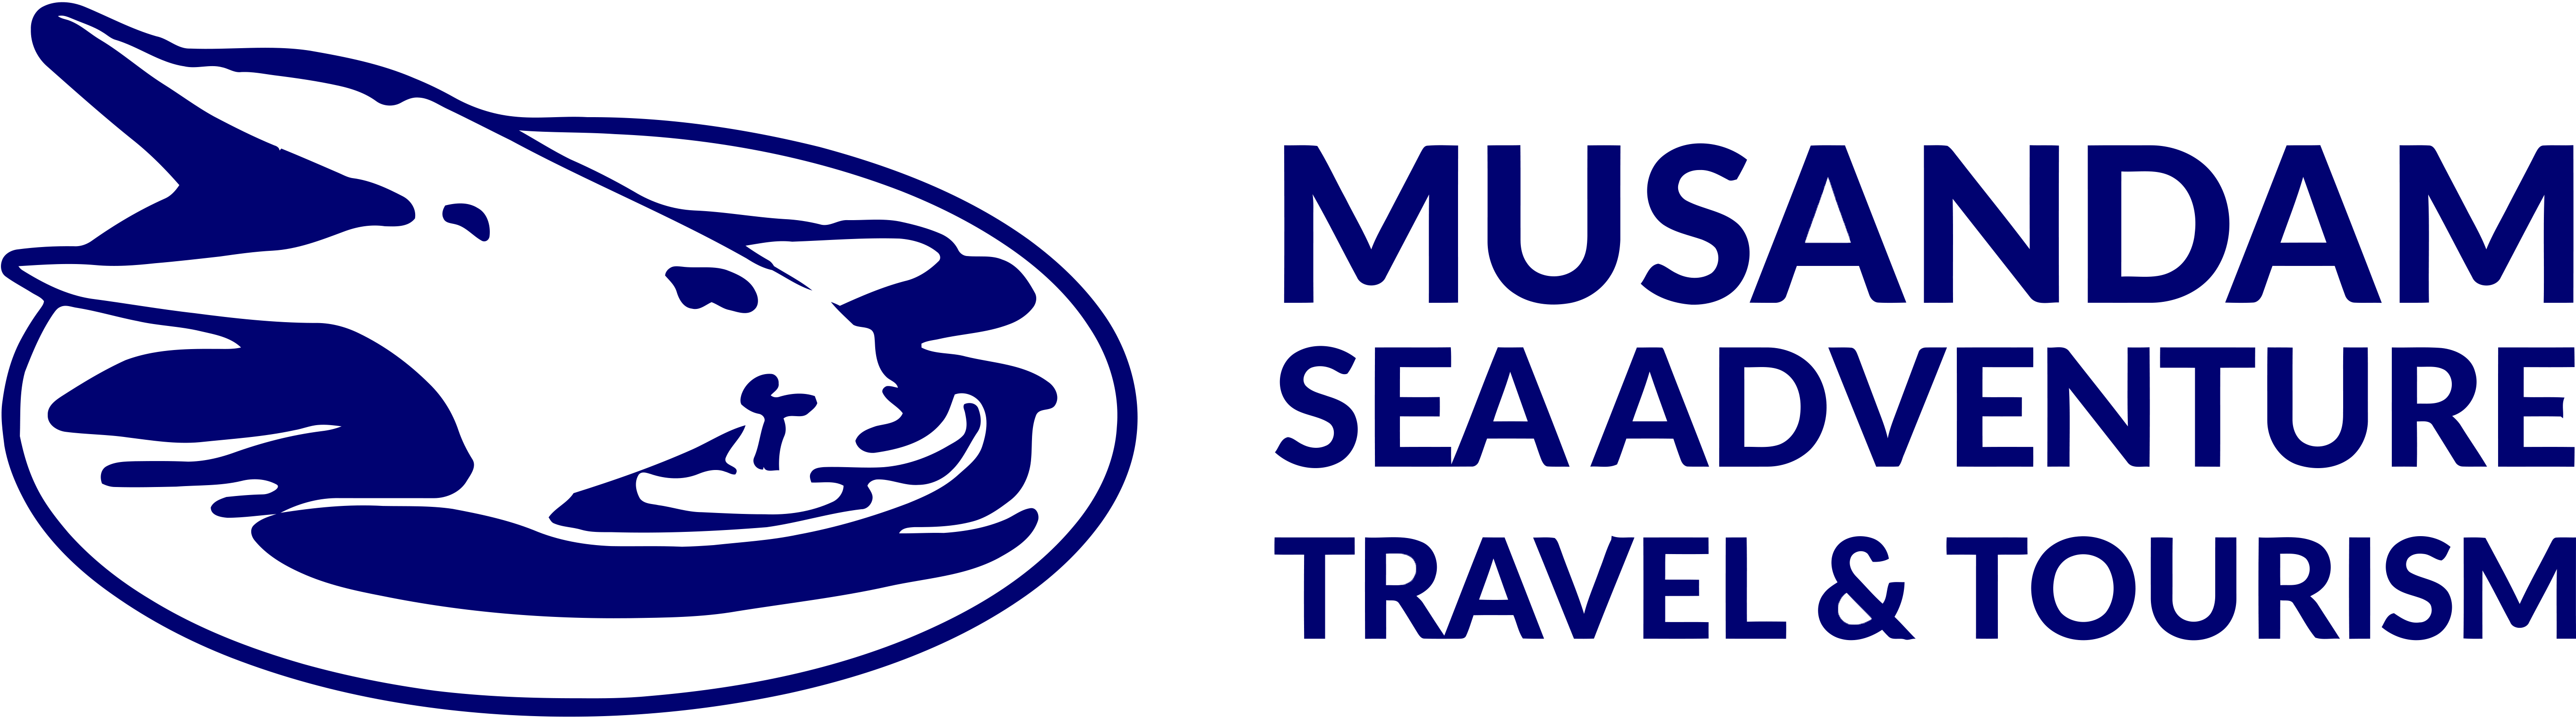 Musandam Sea Adventure Travel Tourism